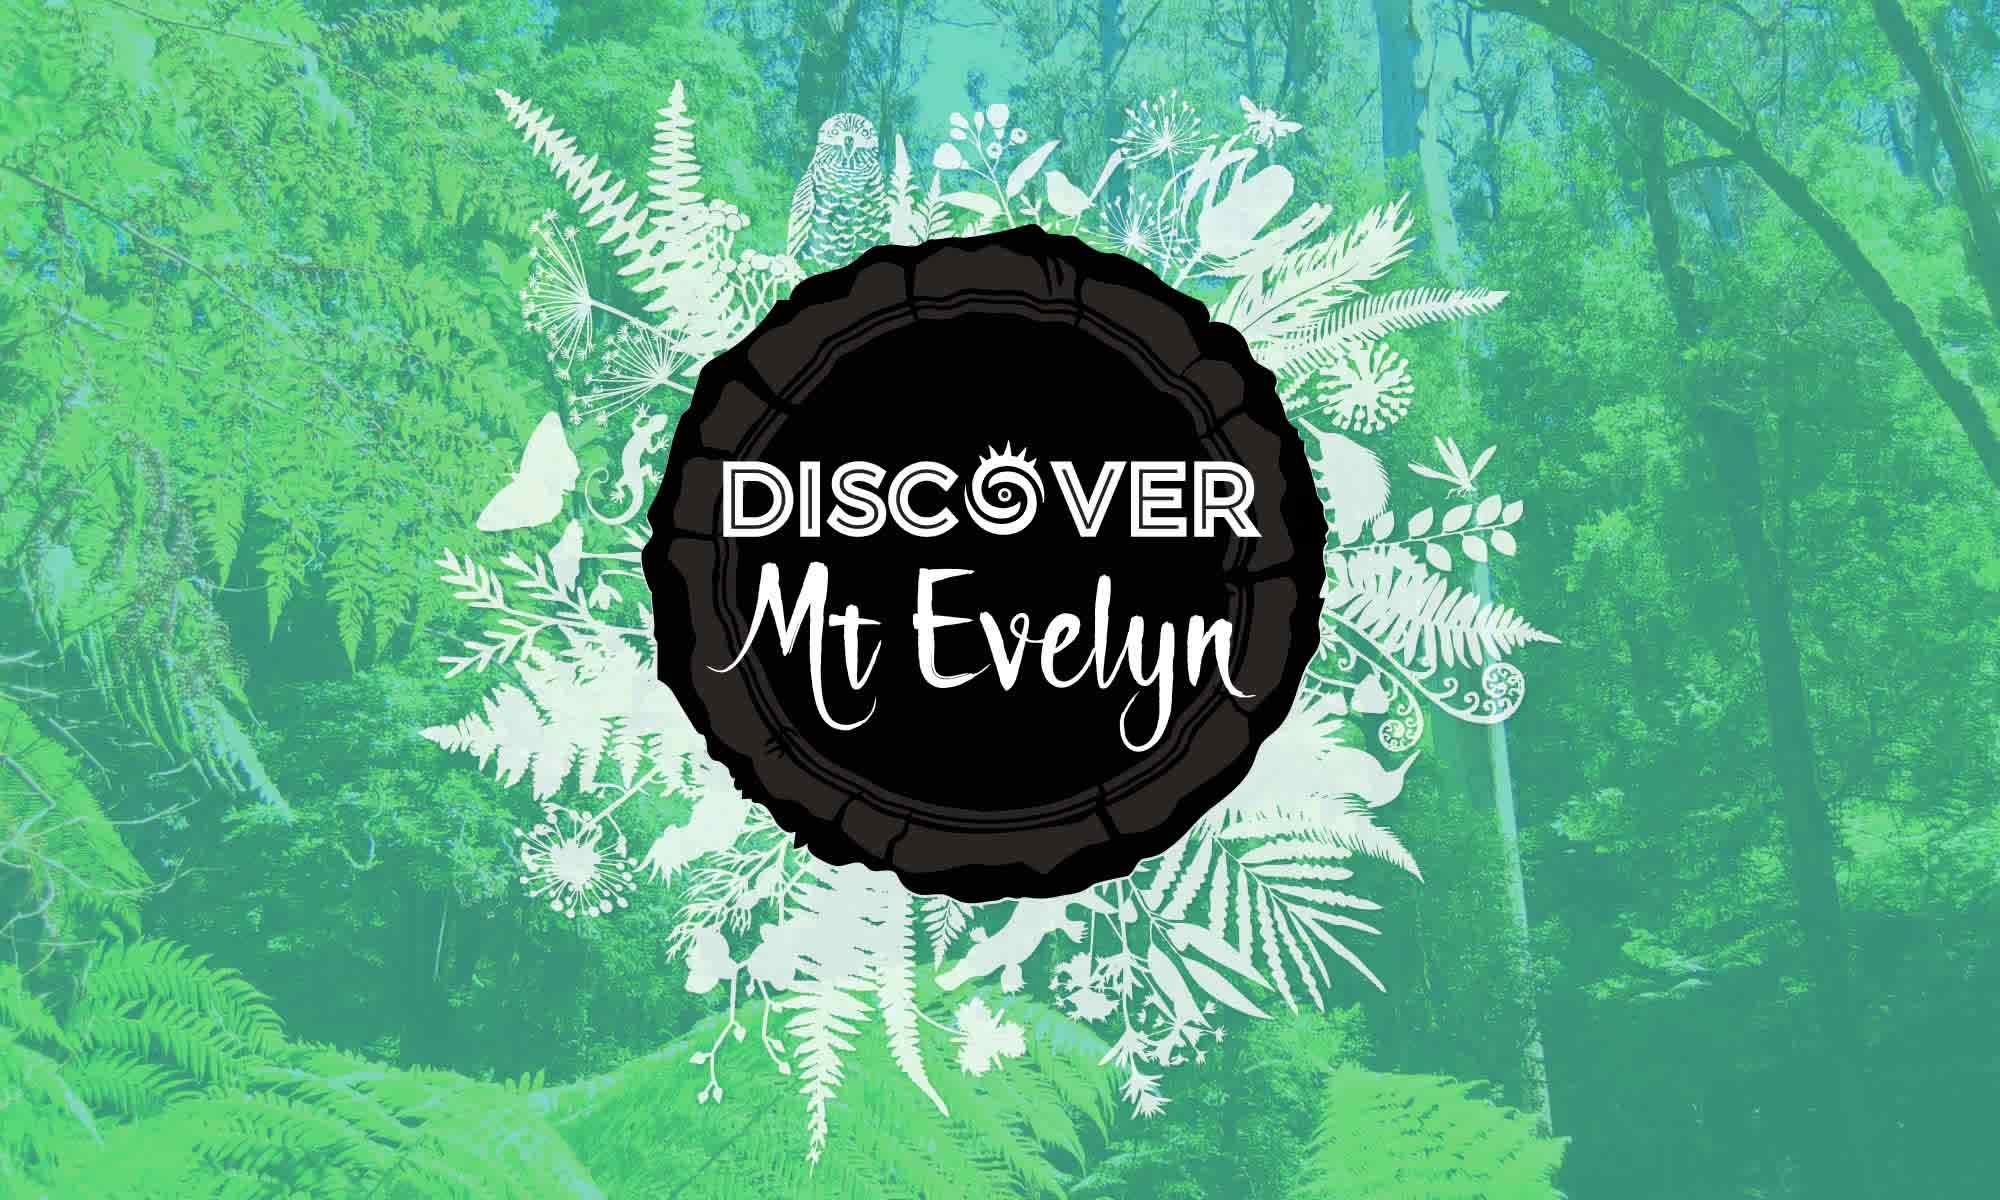 Discover Mt Evelyn